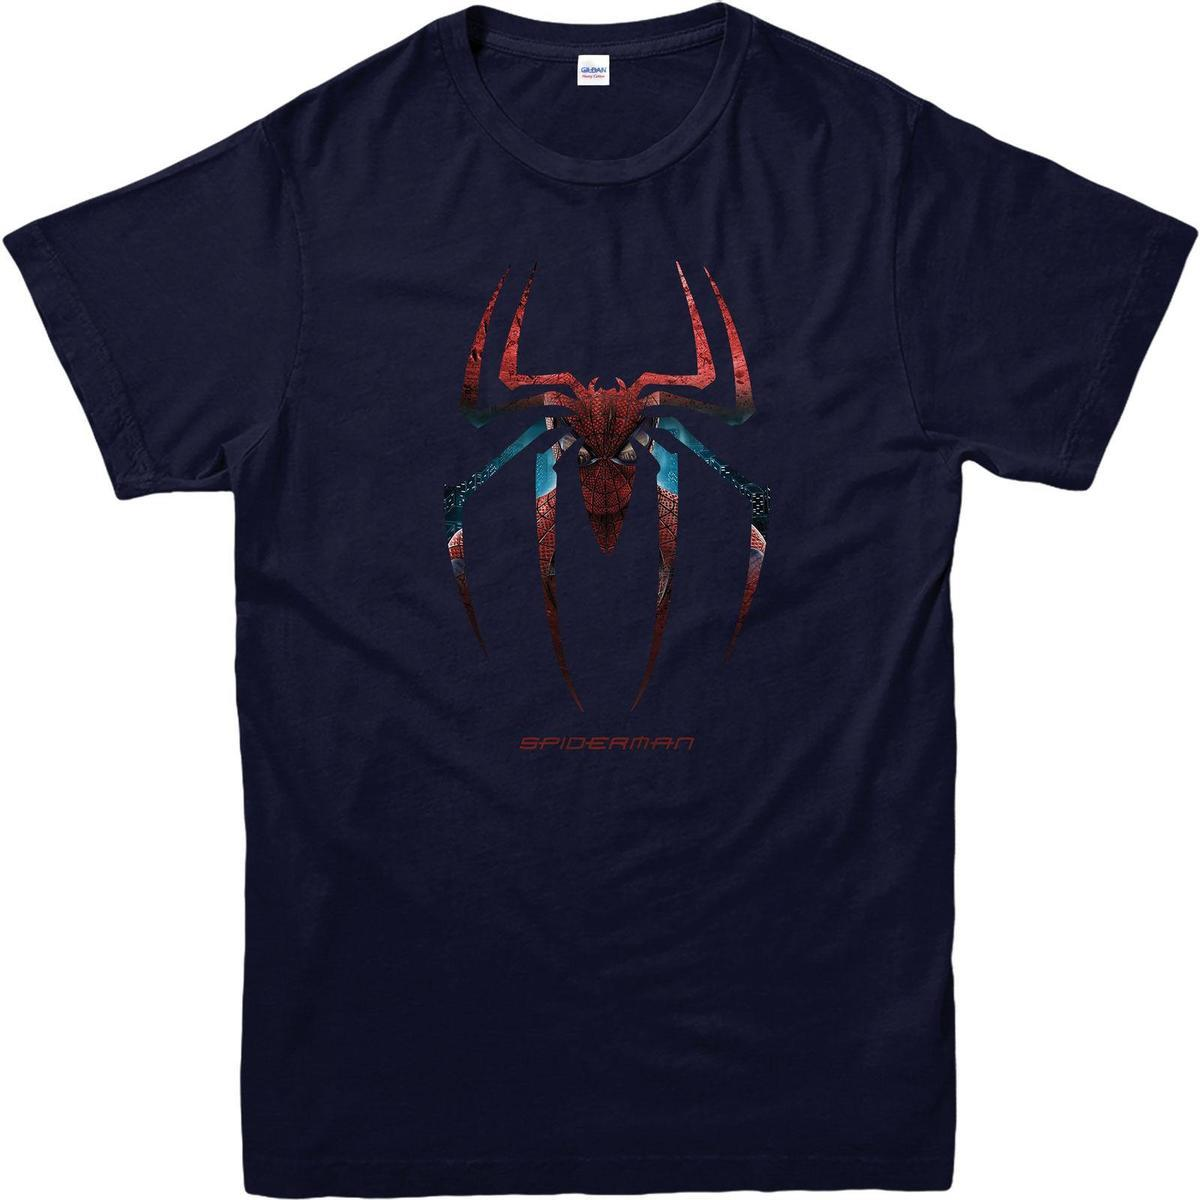 Spiderman Logo T Shirt Web Marvel Comics Superheroes SPIDERMAN Gift Designer Coolest Shirts From Godbless005 1273